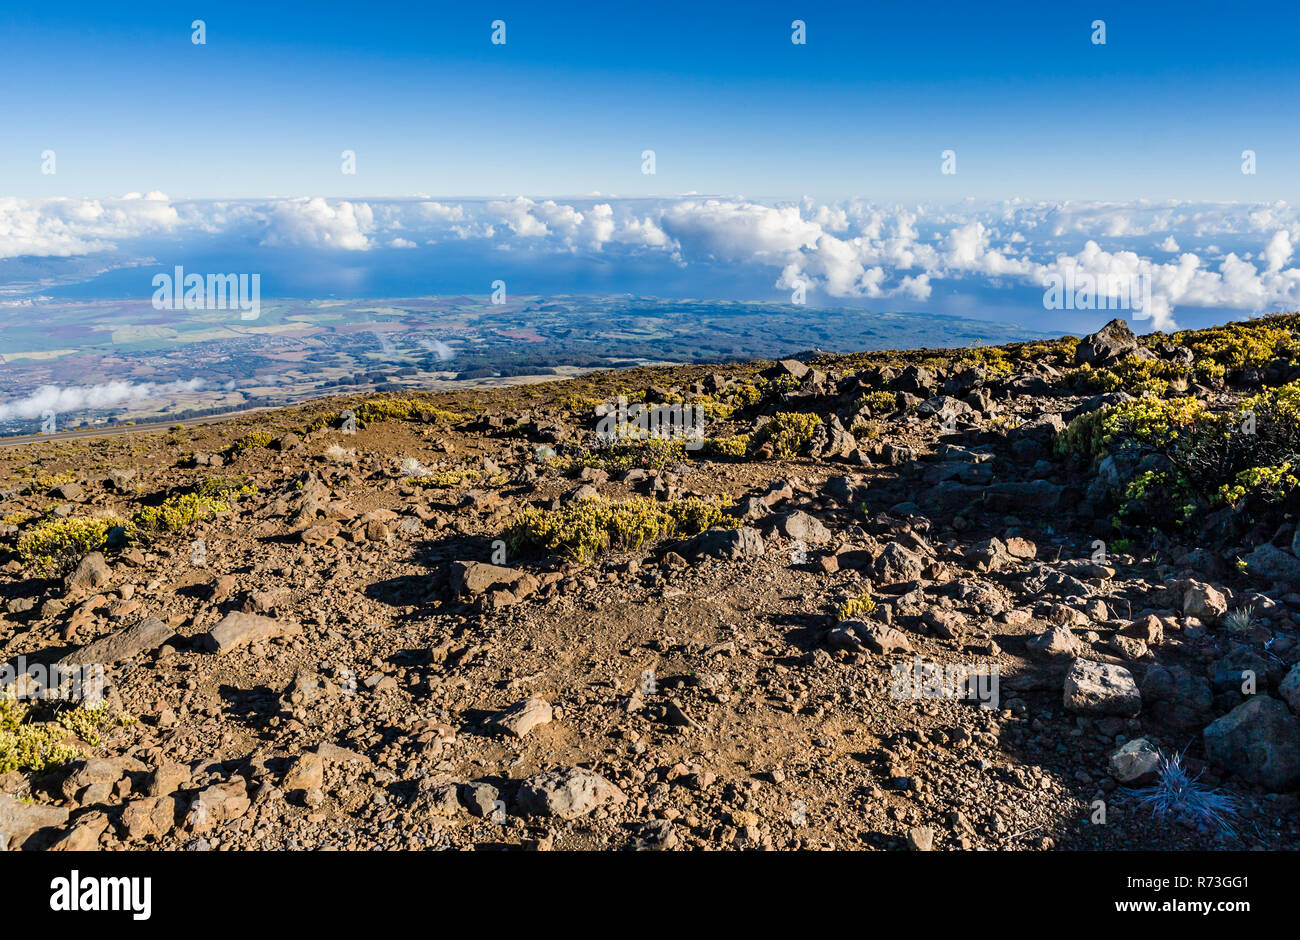 Looking North from the slopes of Haleakala On Maui, Hawaii, USA. - Stock Image